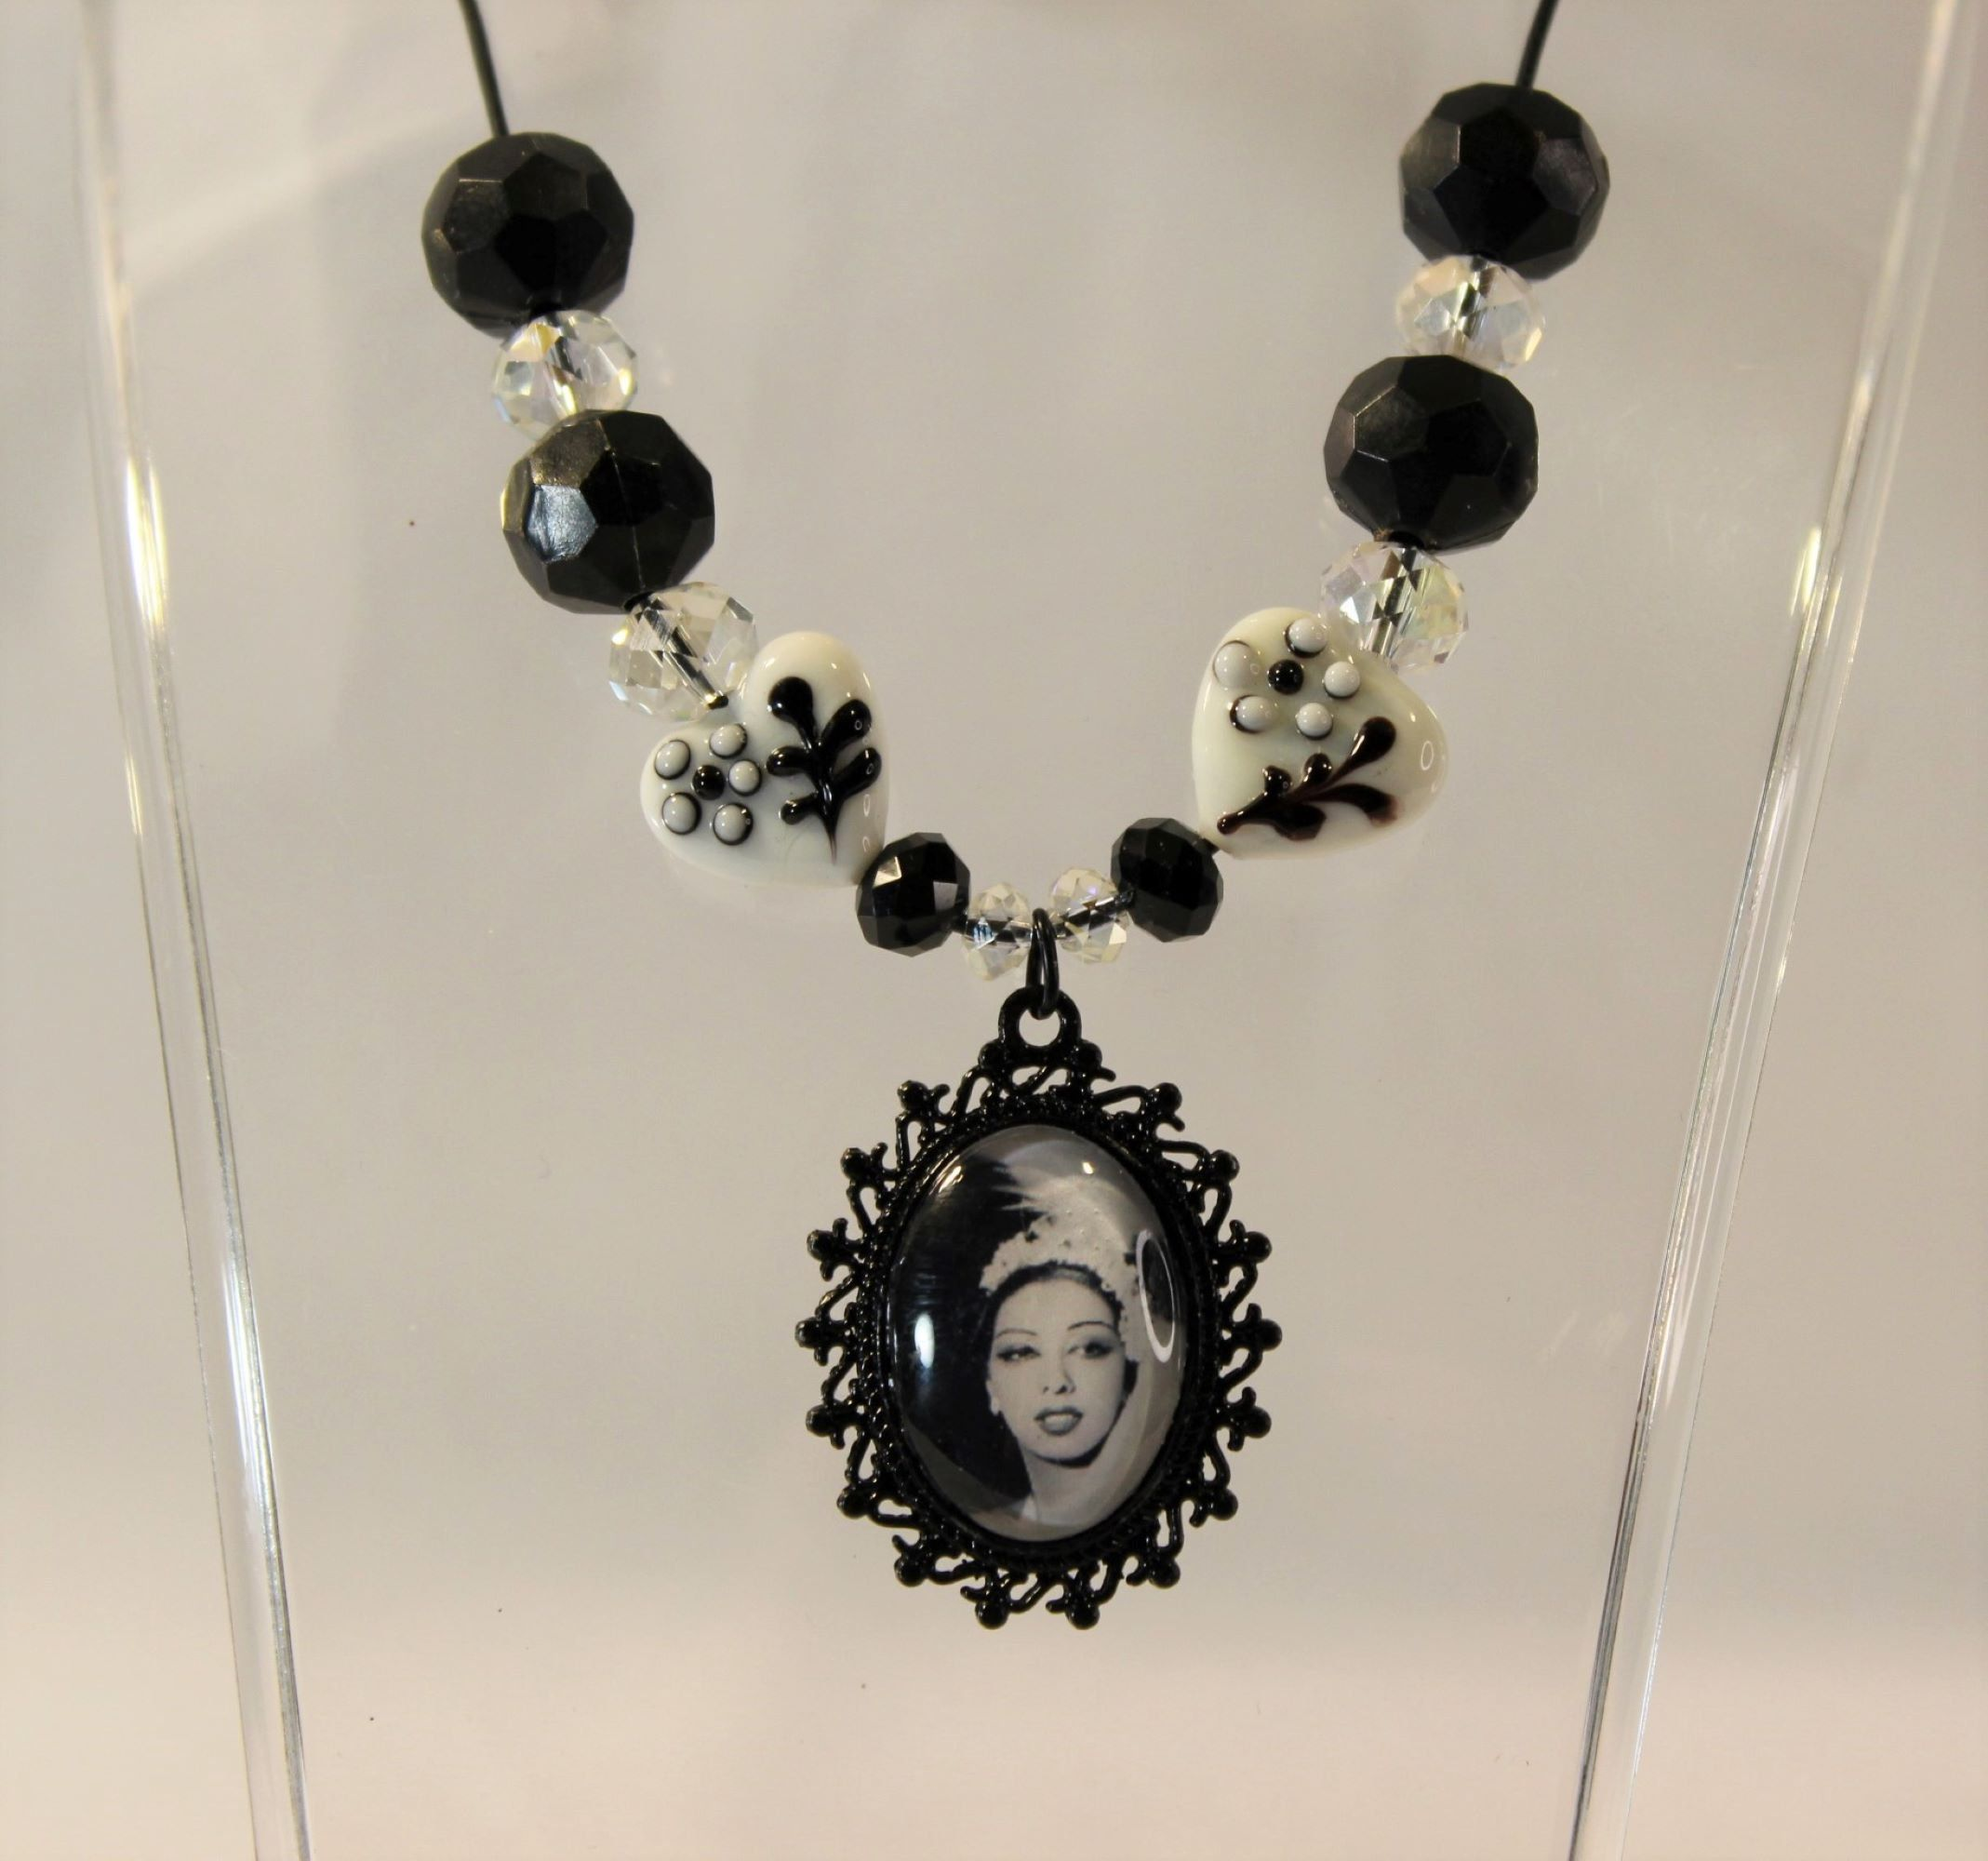 Sean Connery Never Say Never Again Glam Acrylic Beaded Rhinestone Necklace in Black and Clear